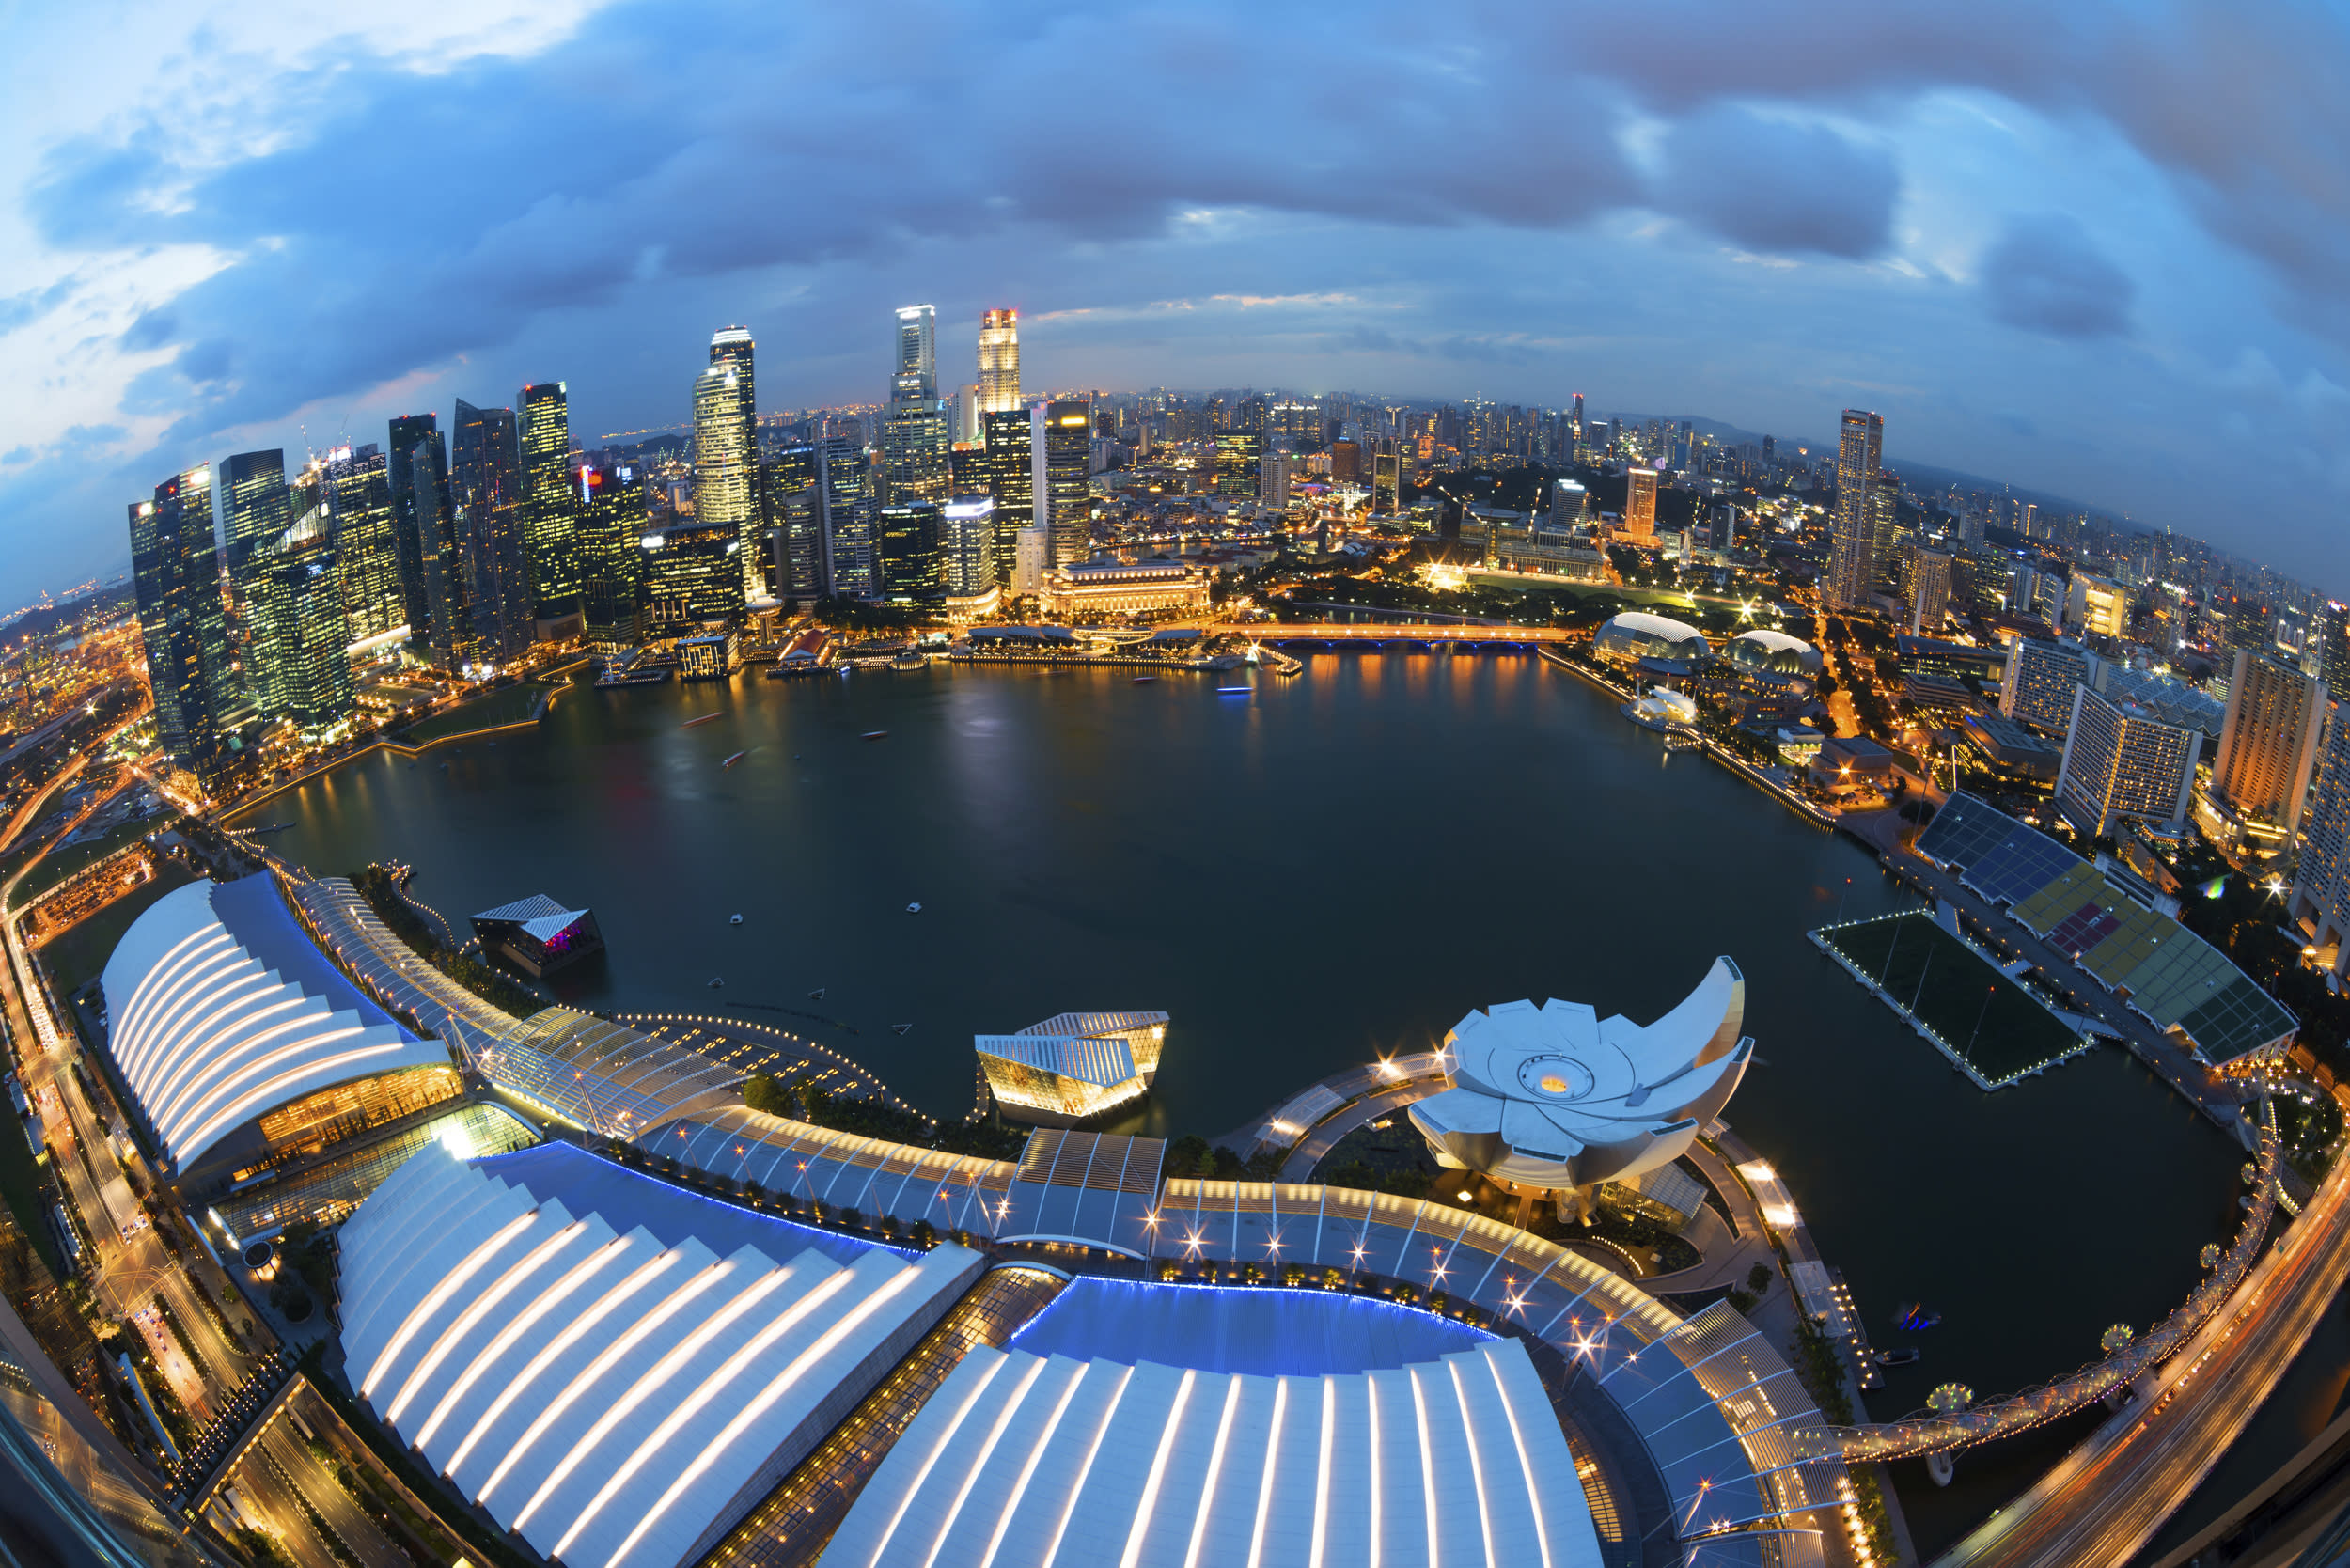 <p>Pension experts at Mercer have identified the countries with the best pension systems. At number 10 is Singapore.</p>  <p>The system is based on the Central Provident Fund, which covers everyone in a job. Some of the cash can be withdrawn during your working life, and a prescribed minimum drawn down at retirement as an income.</p>  <p>Overall, Singapore scored 65.9 out of 100. It fared well on sustainability measures, and integrity, but relatively low incomes in retirement dragged its combined score down.</p>